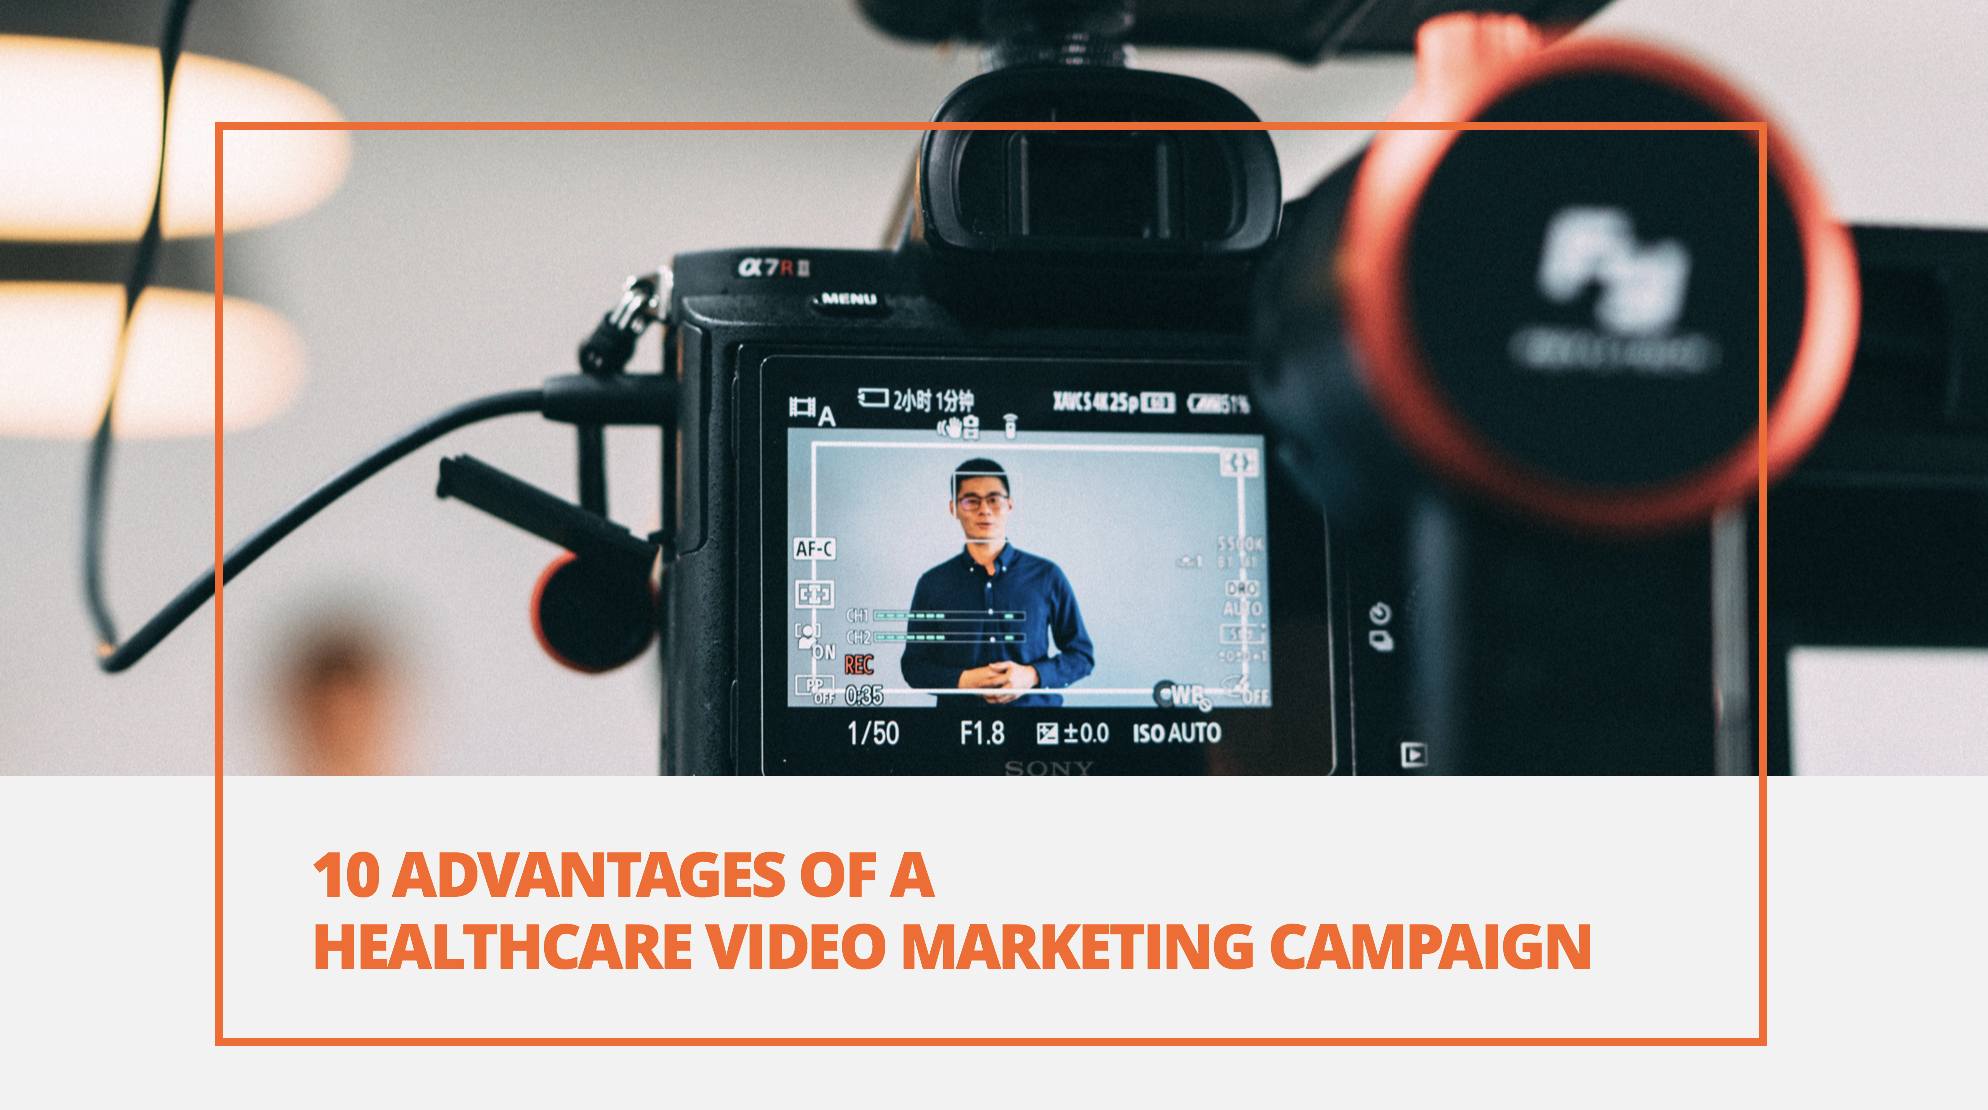 10 Advantages of a Healthcare Video Marketing Campaign